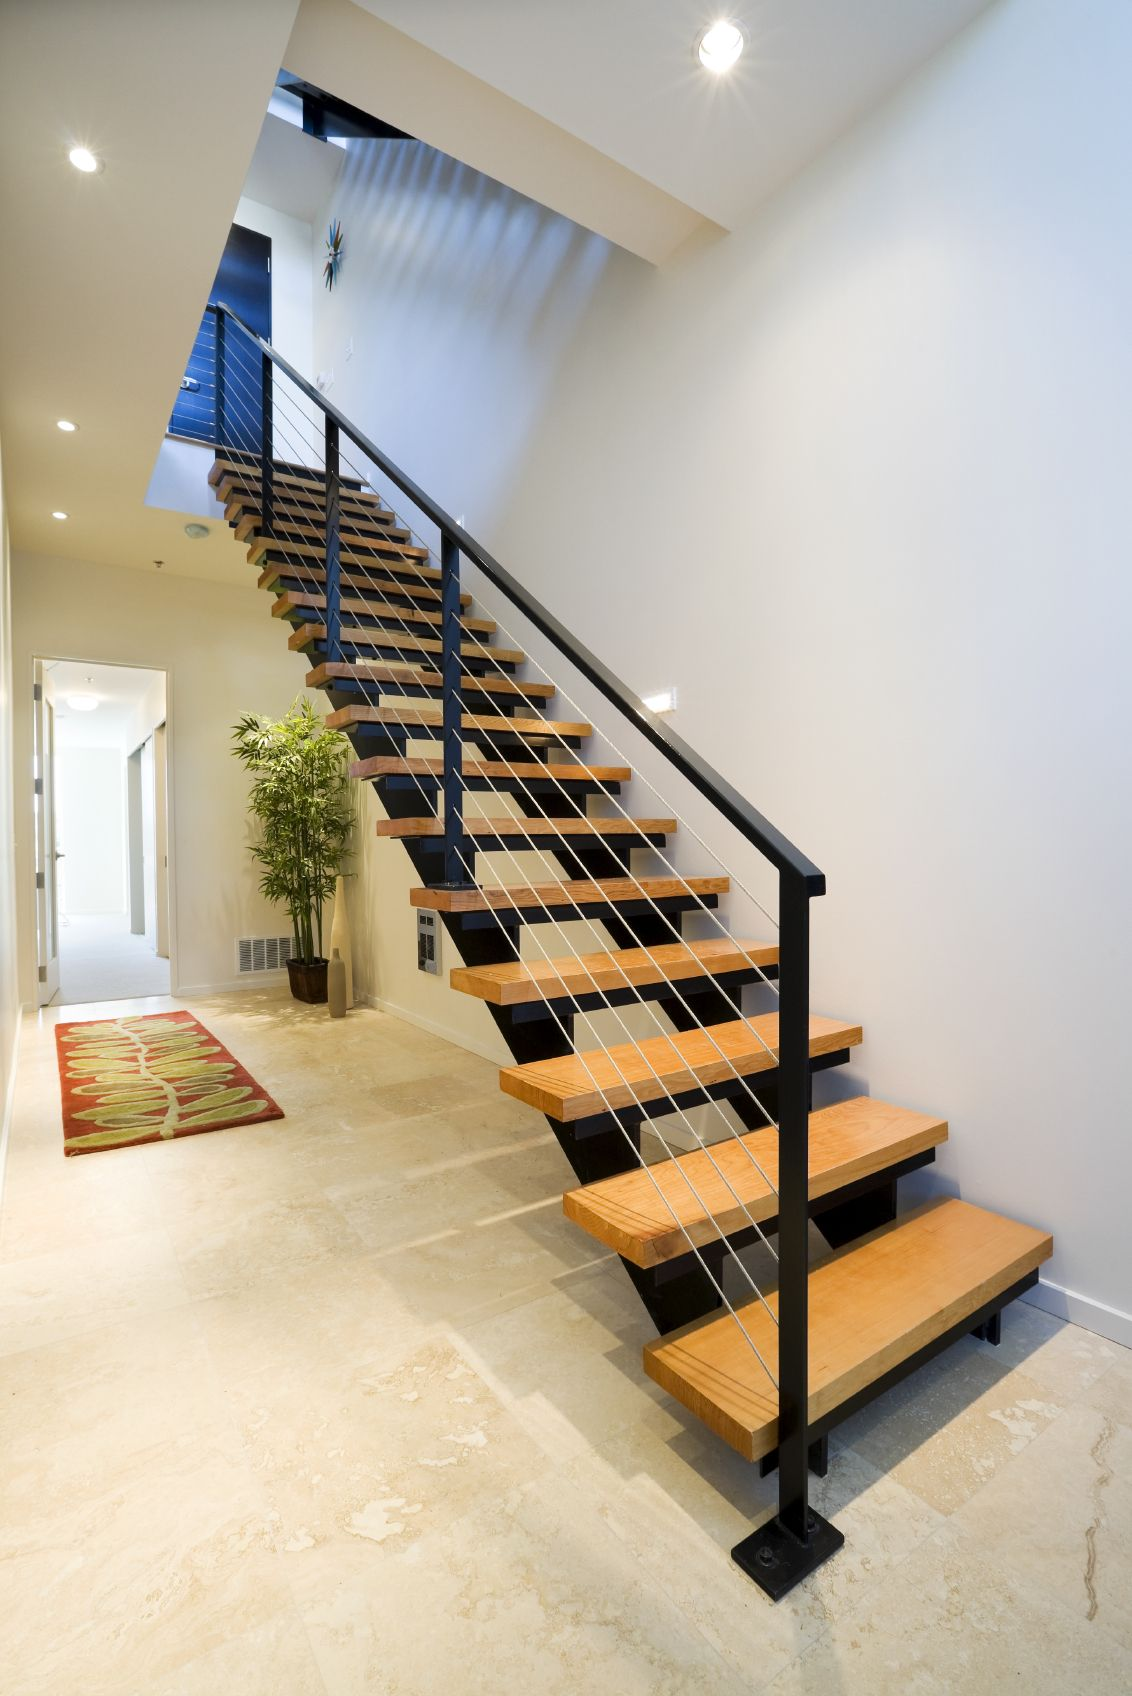 199 foyer design ideas for 2018 all colors styles and sizes this modern staircase has a metal frame with natural wood treads the stone tile floor dailygadgetfo Gallery